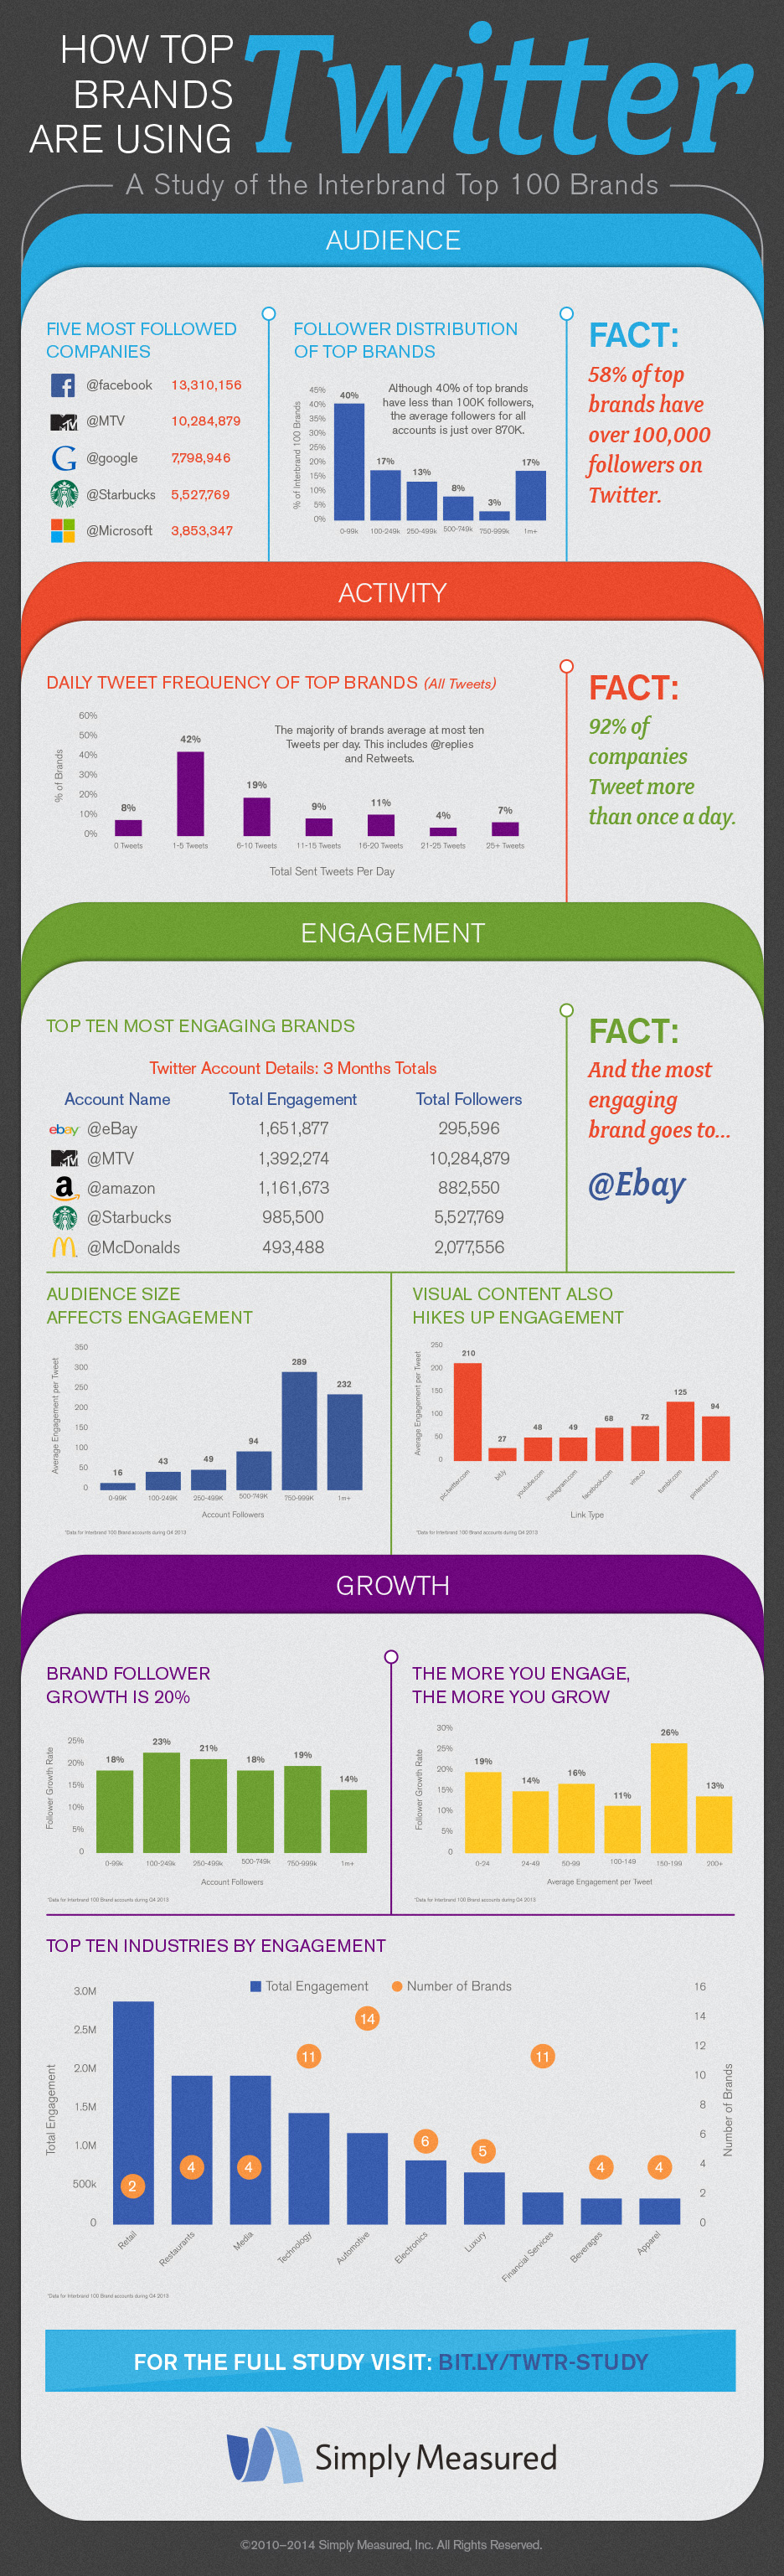 How Top Brands Are Using Twitter - Fonte: Simply Measured